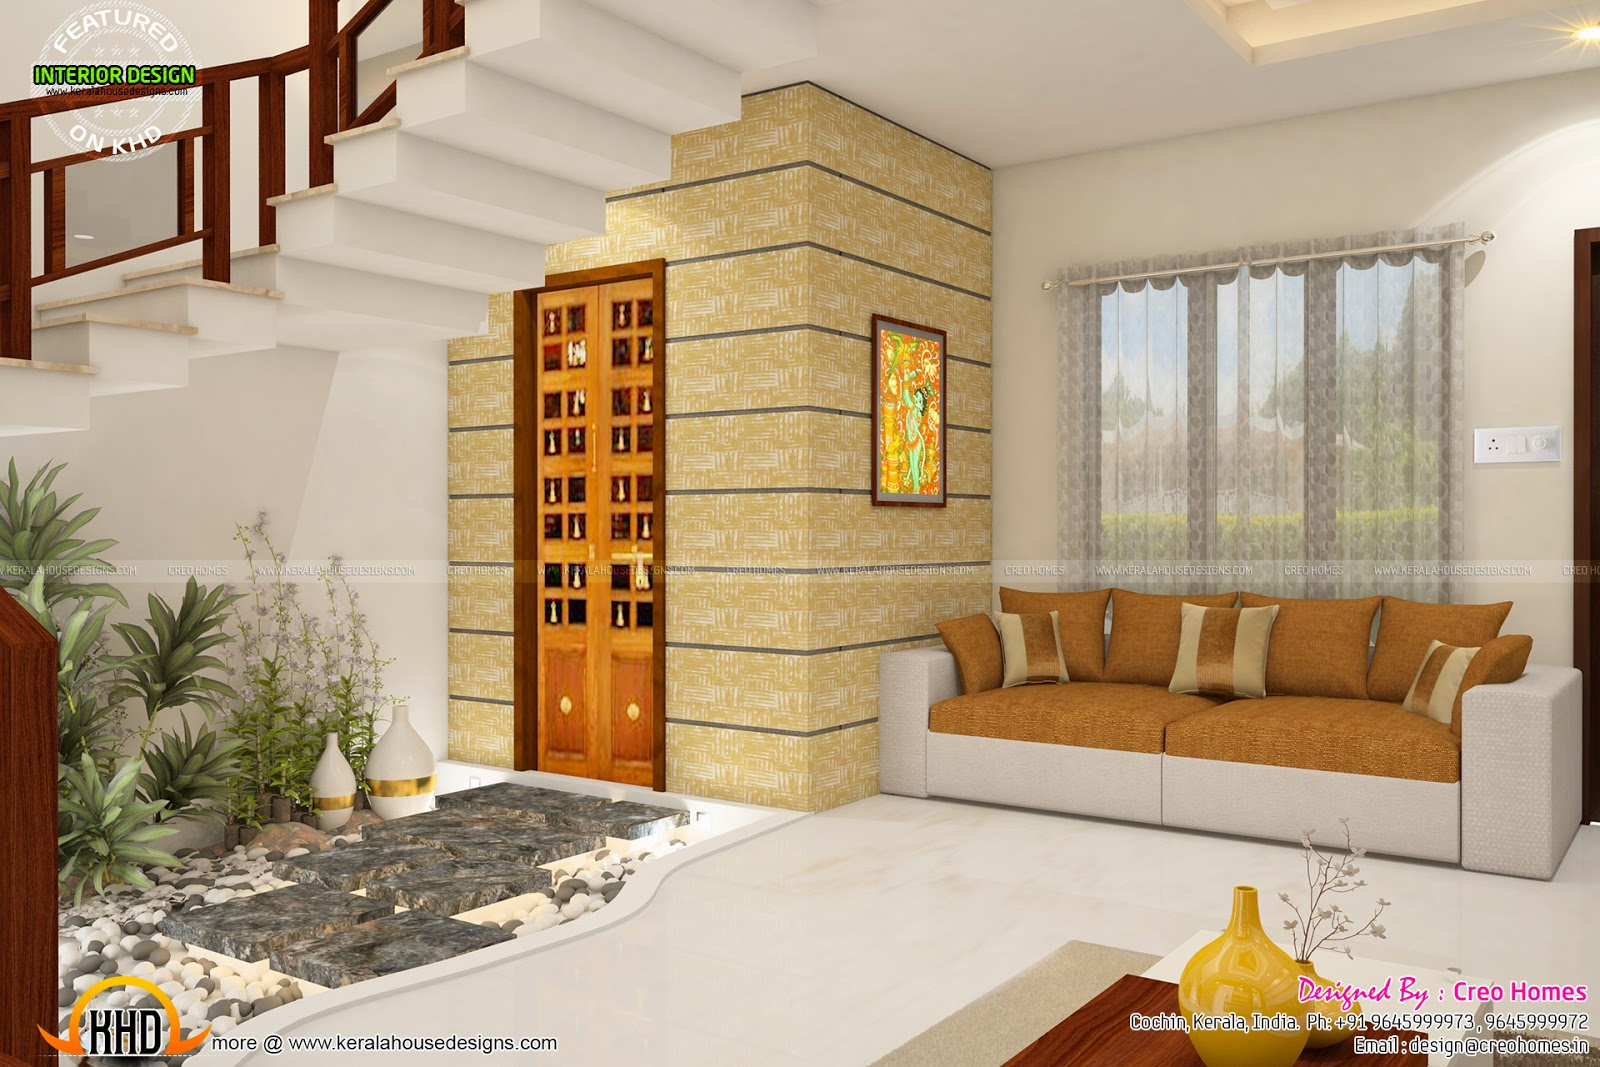 Total home interior solutions by creo homes kerala home for In side house design